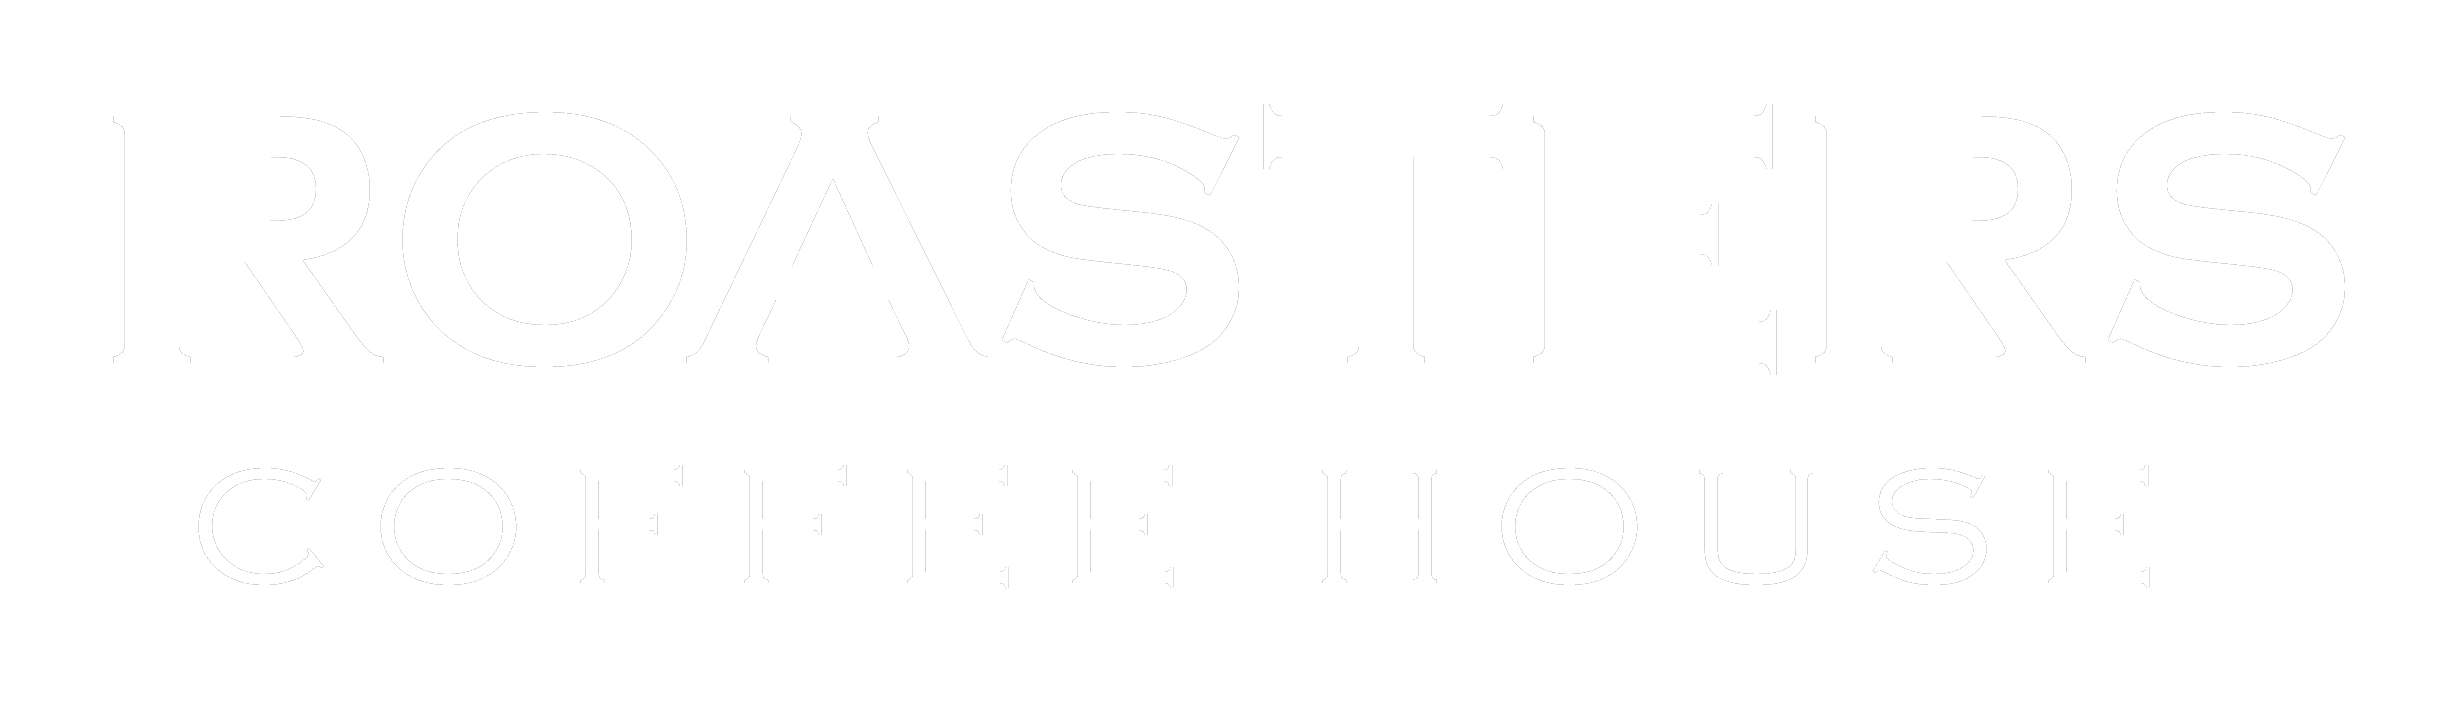 Roasters Coffee HouseRoasters Coffee House logo